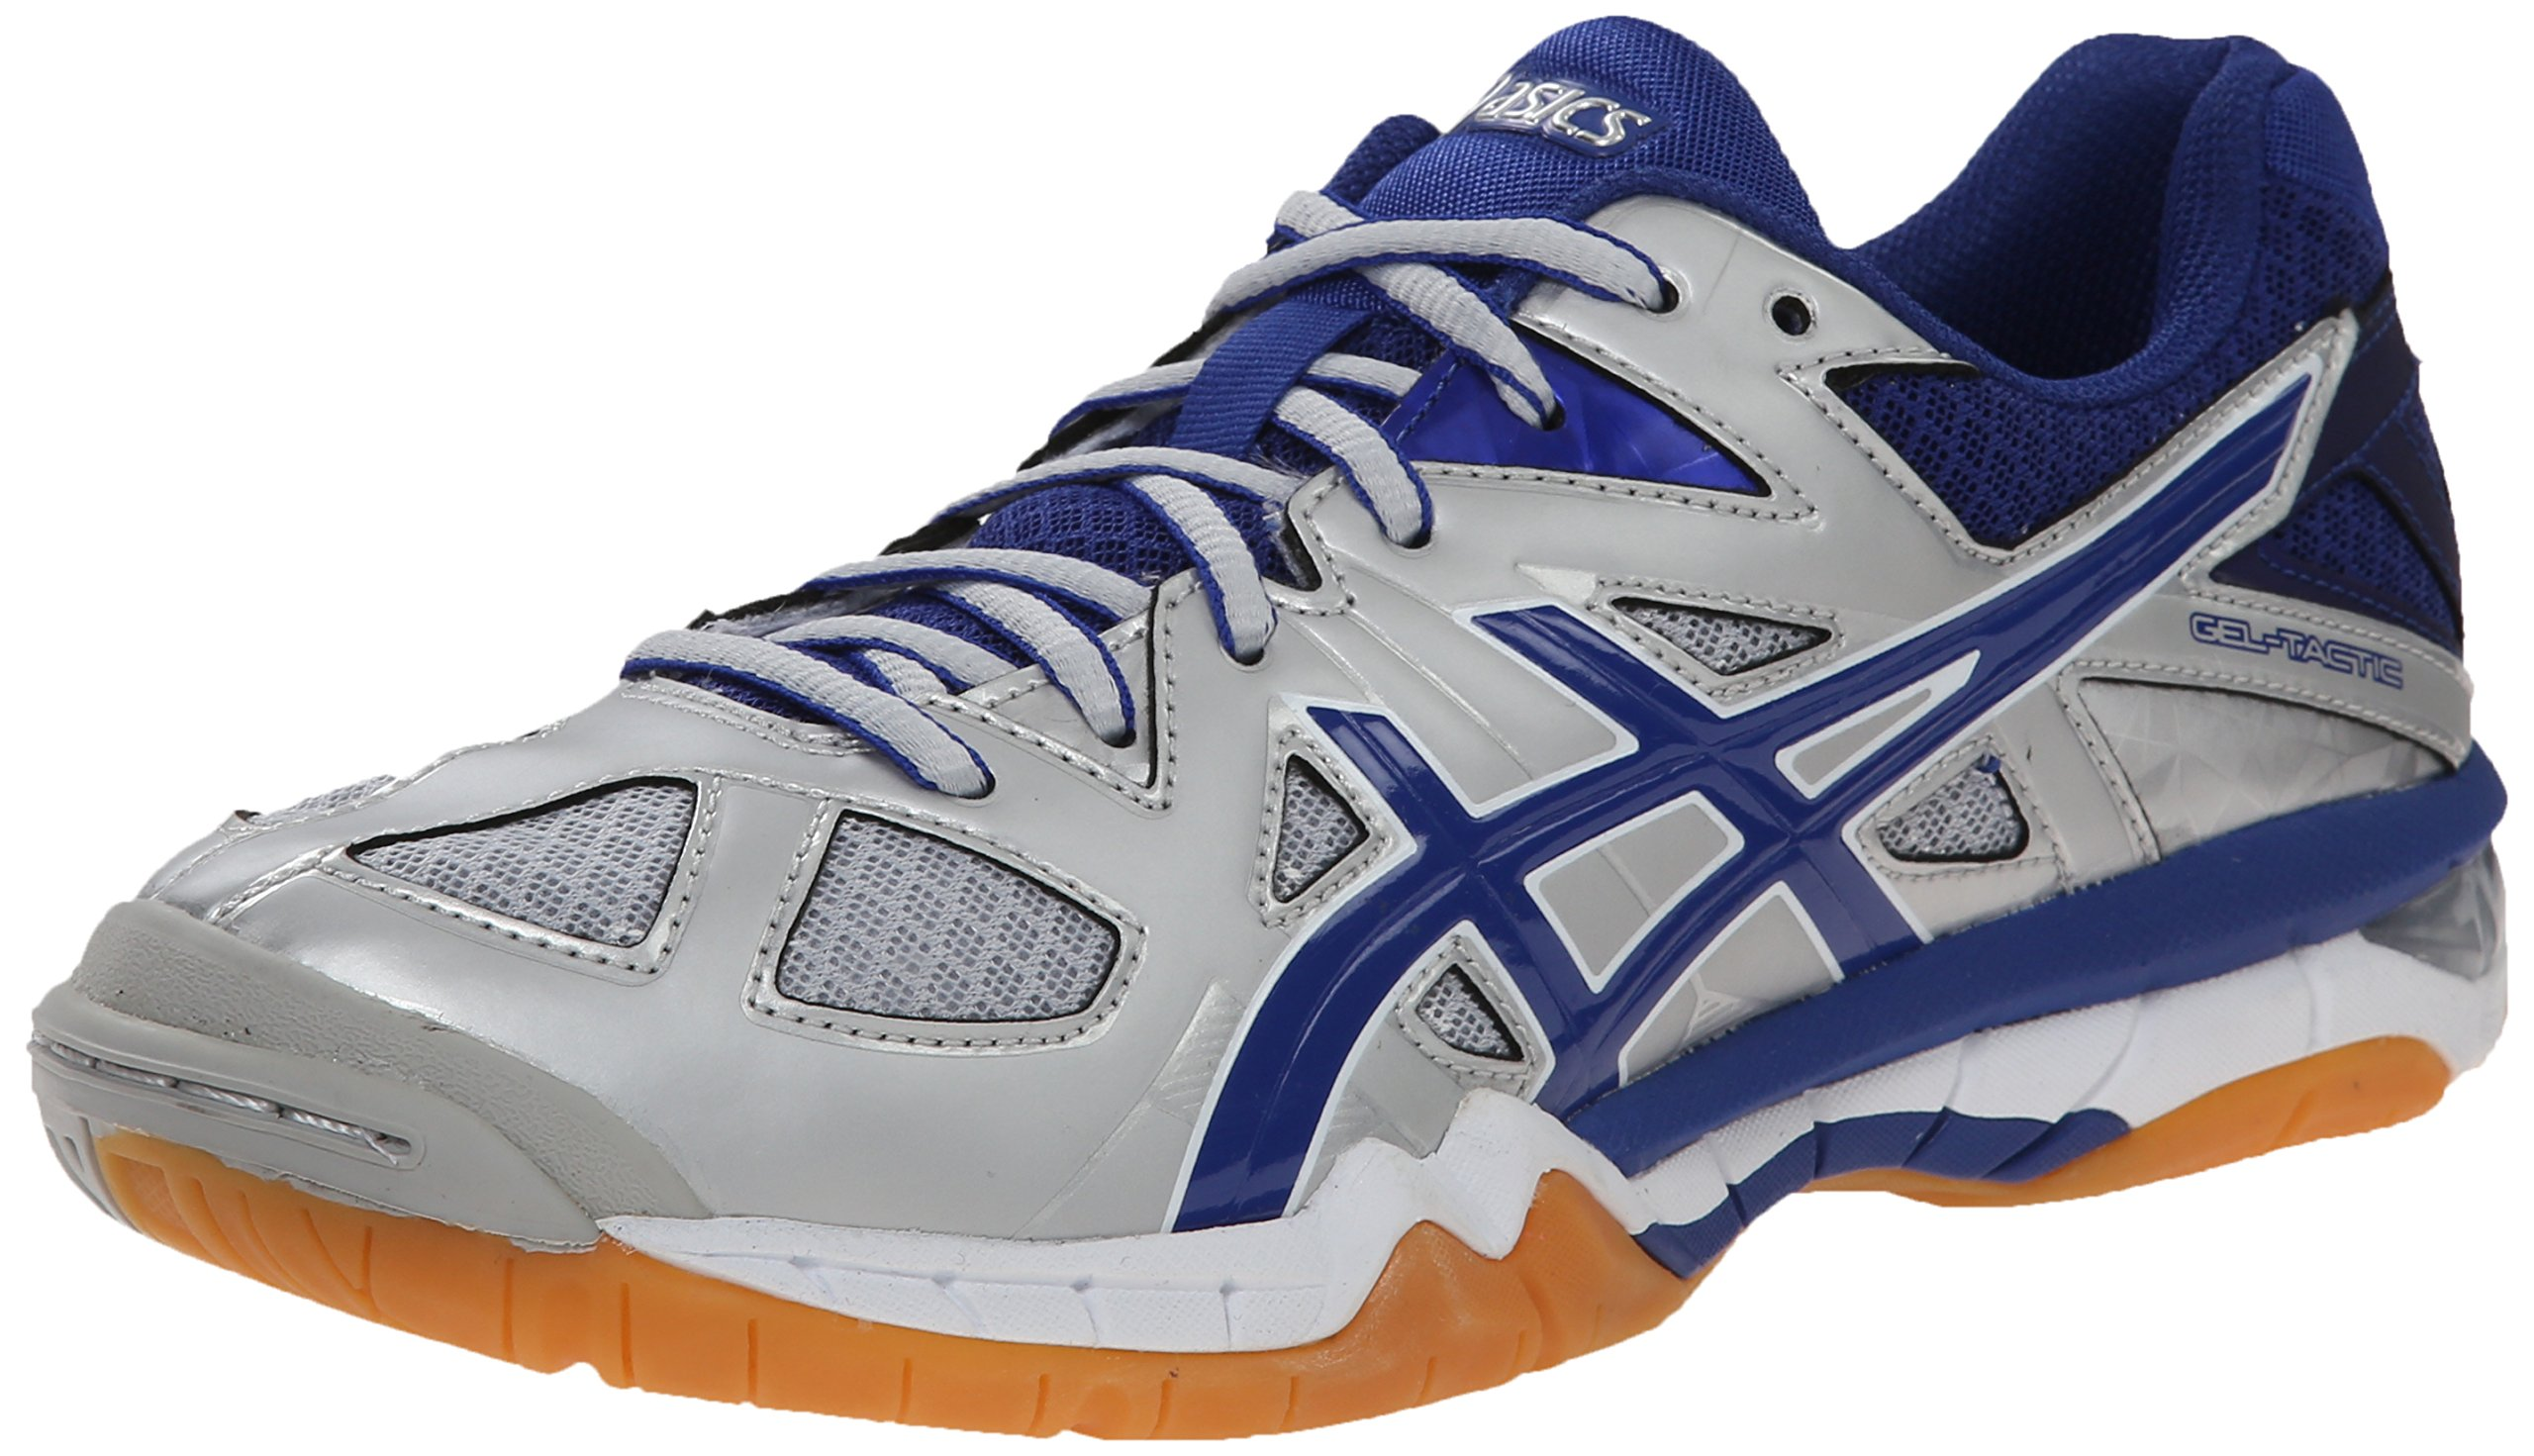 Asics Gel-Tactic Women Silver/Royal/White Volleyball Shoes 17365